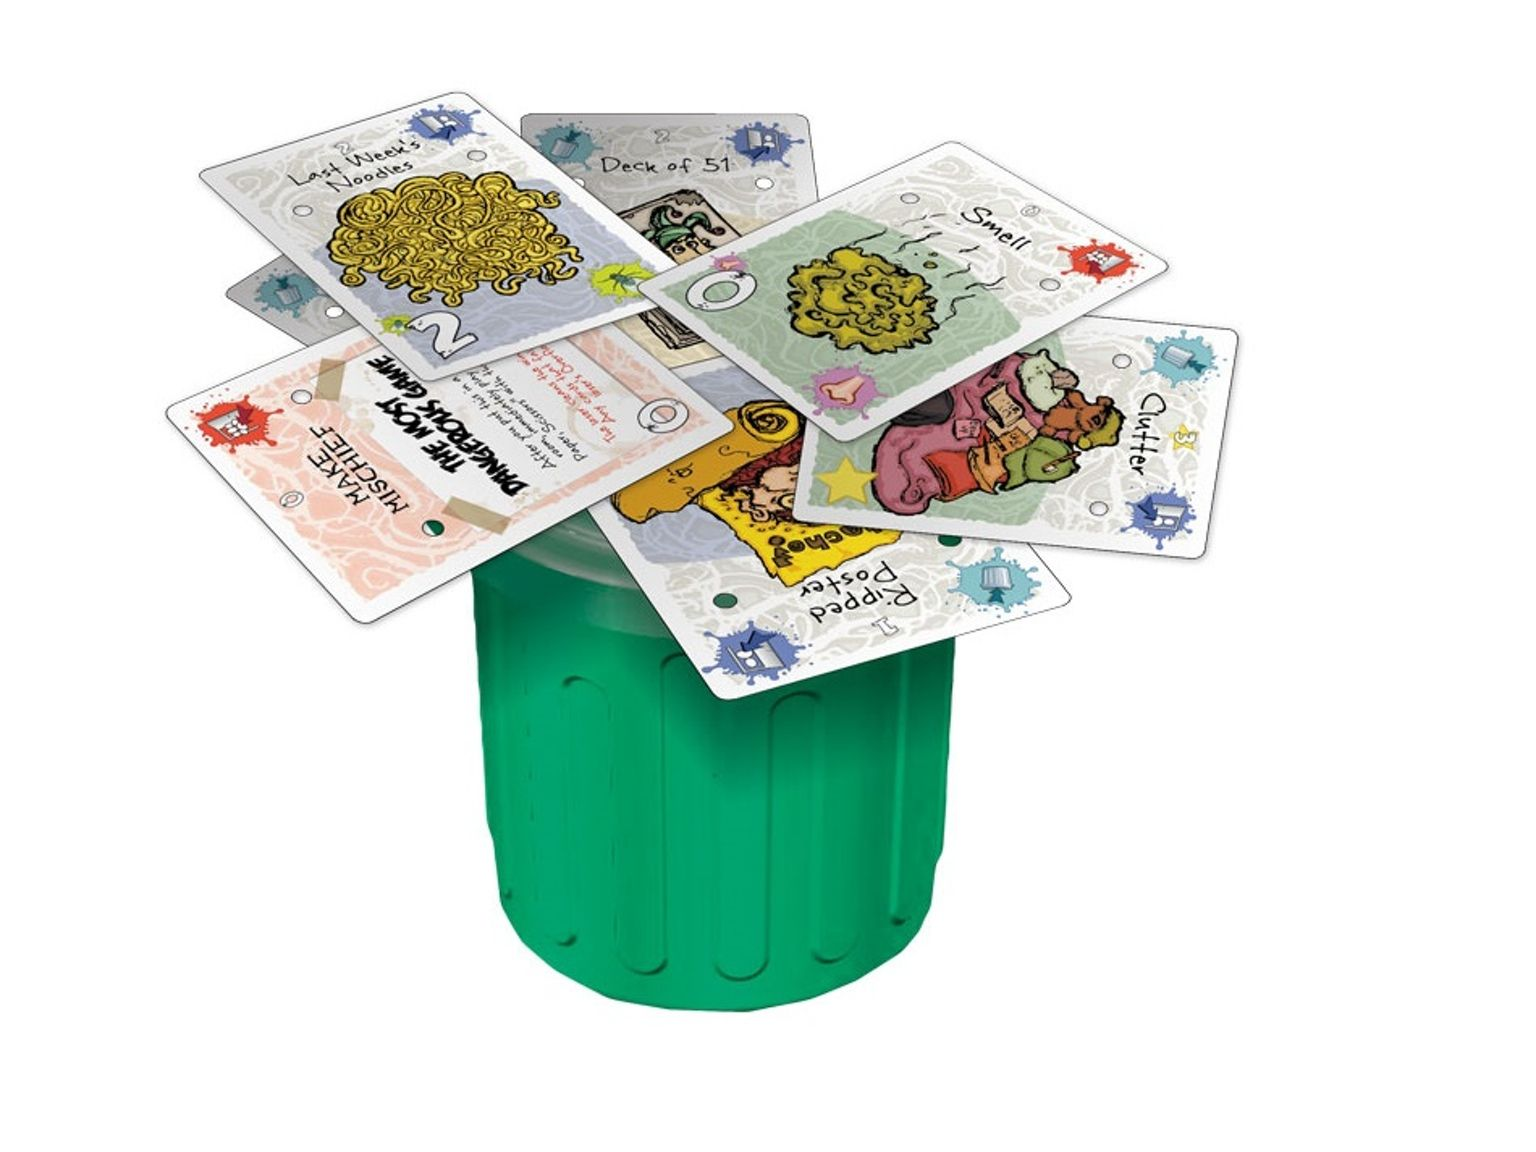 Garbage day 25 player 20 minute dexterity card game